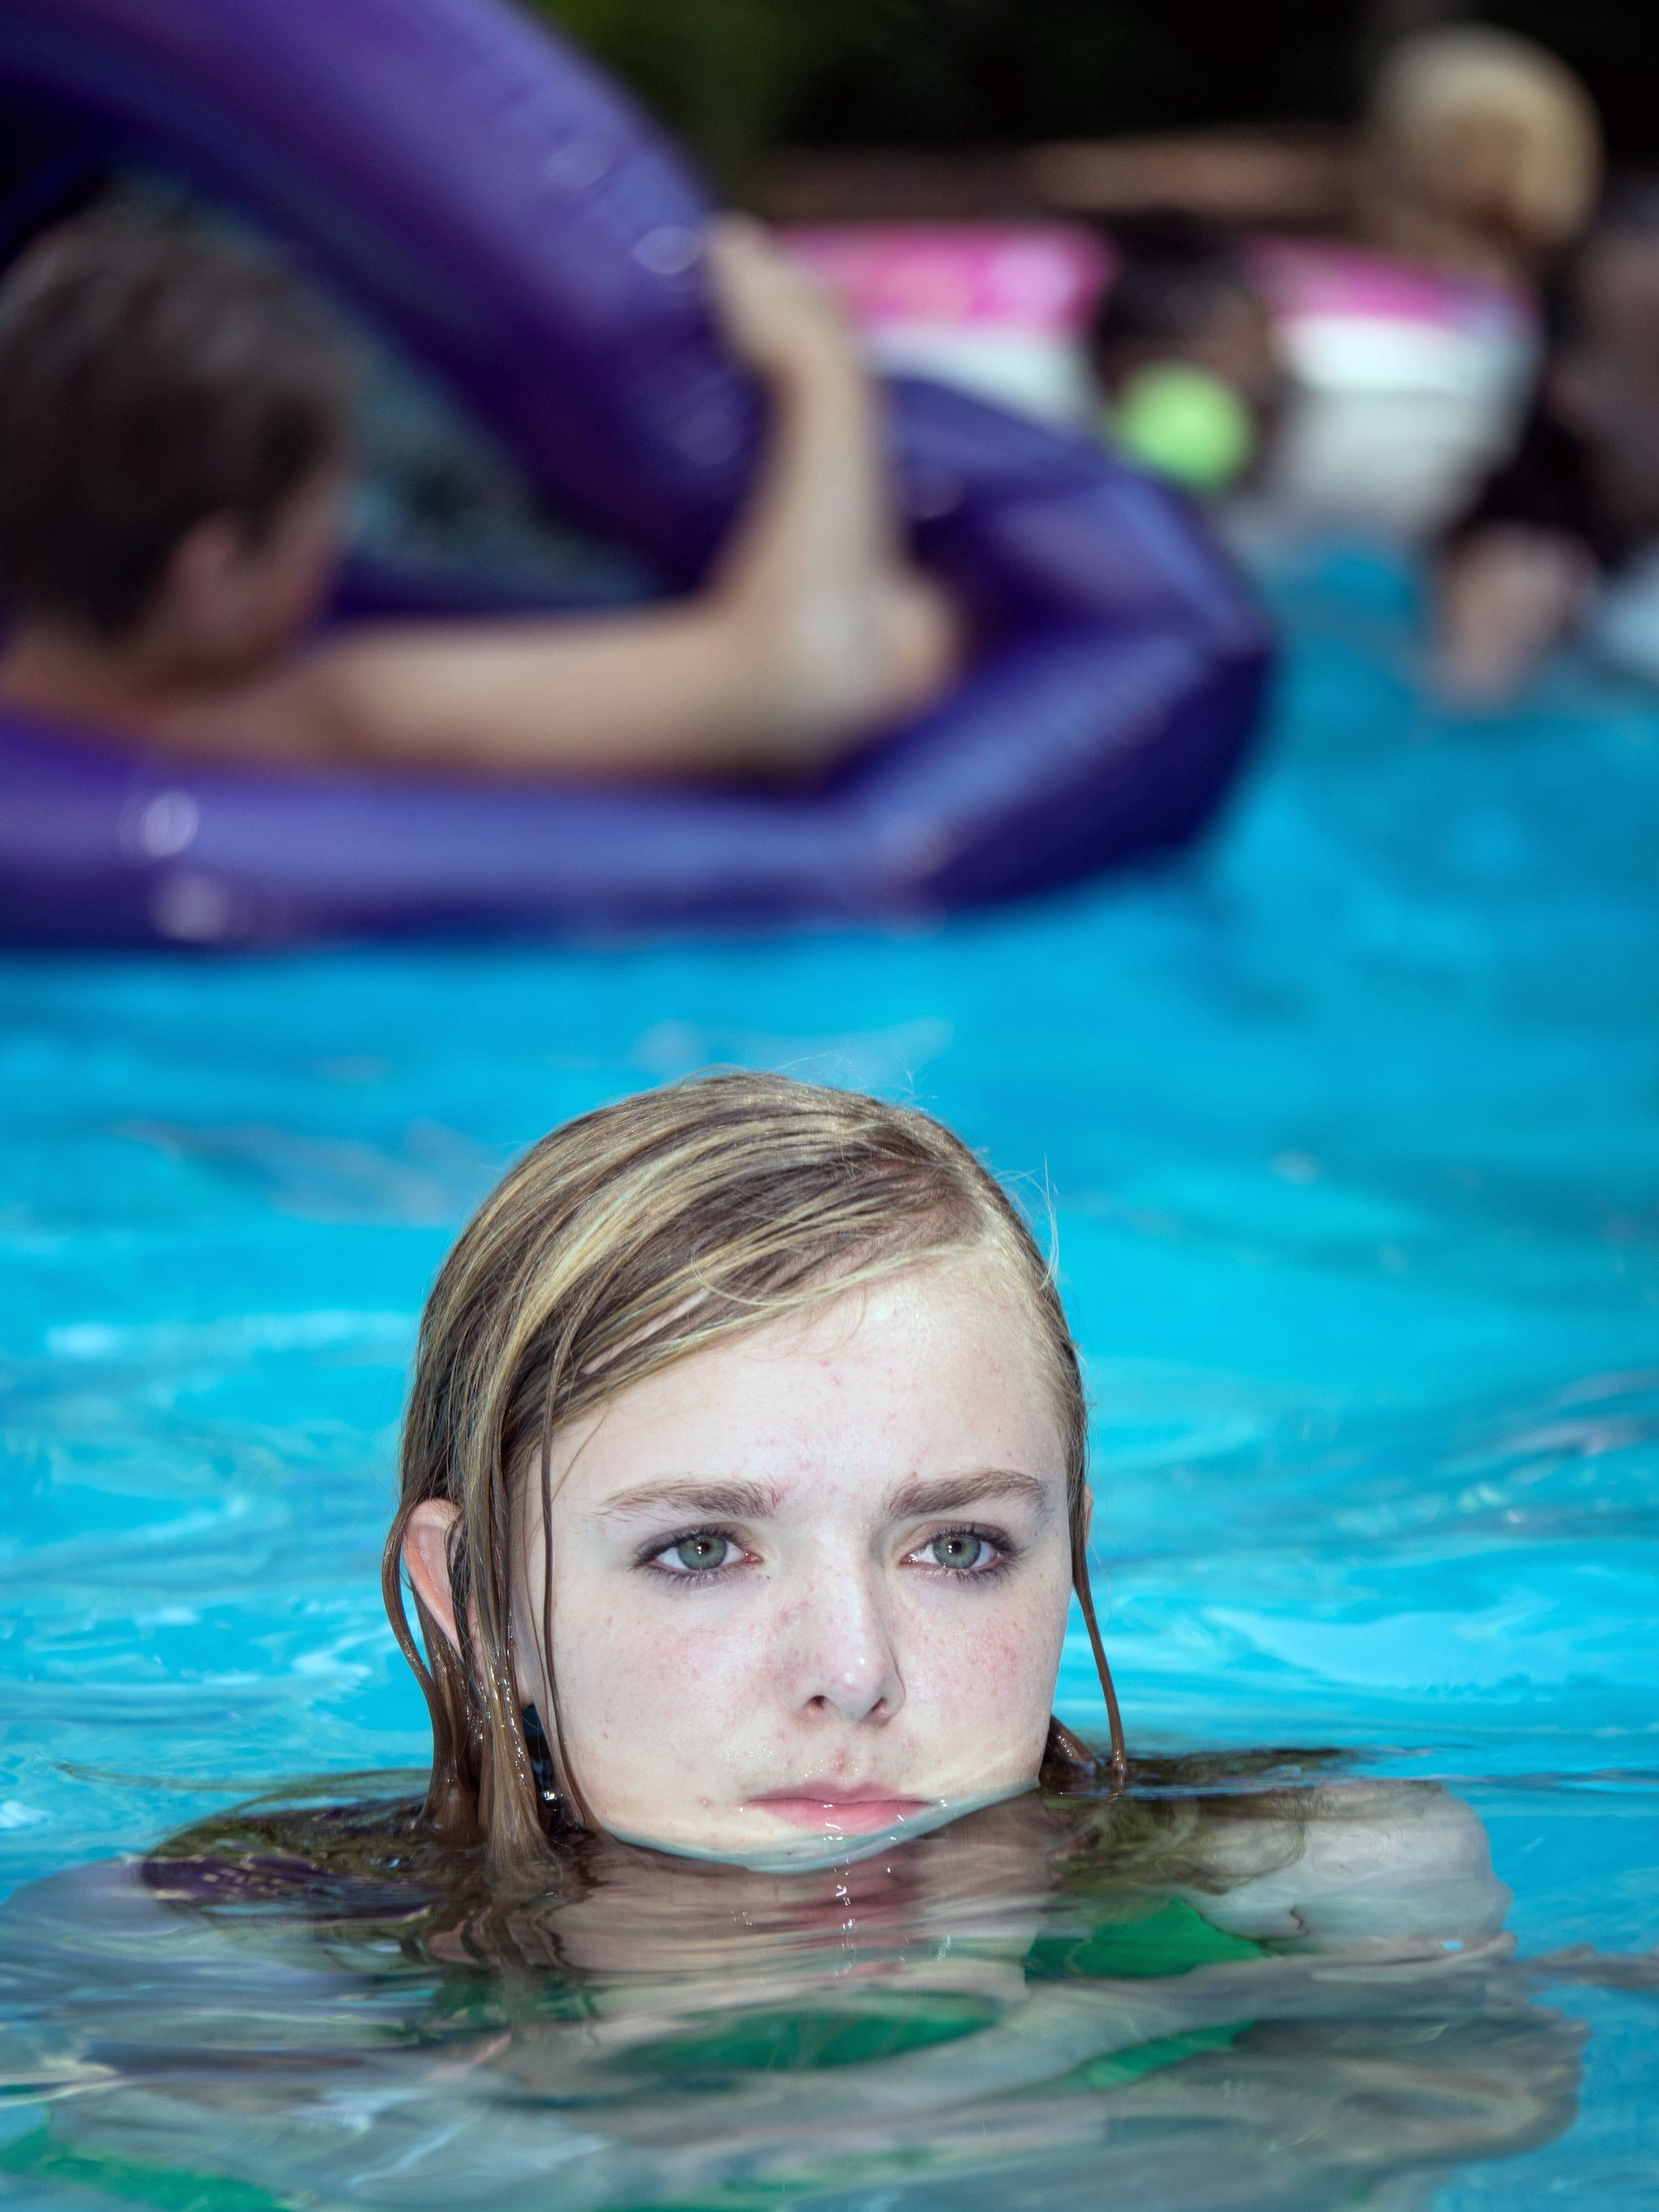 8 Reasons Every Parent Needs to See Eighth Grade With Their Tweens and Teens